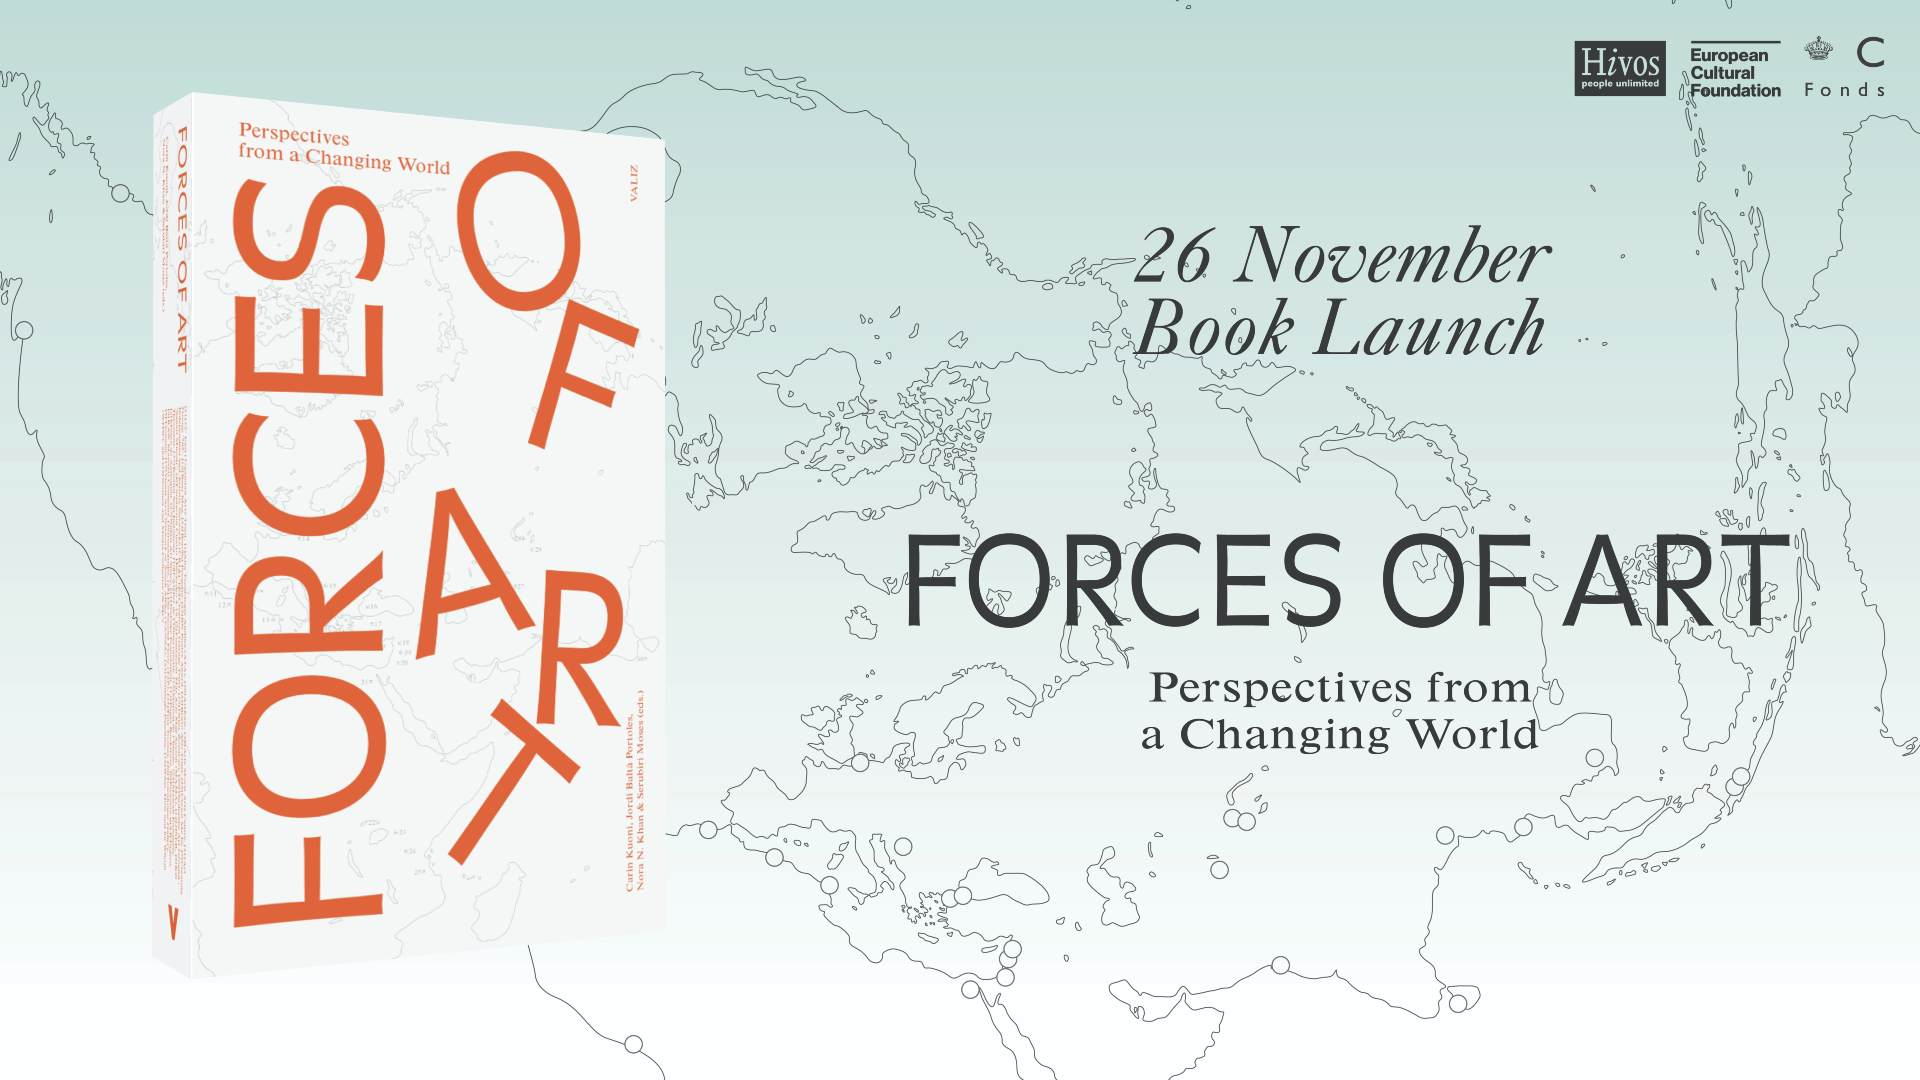 Forces of Art book launch flyer